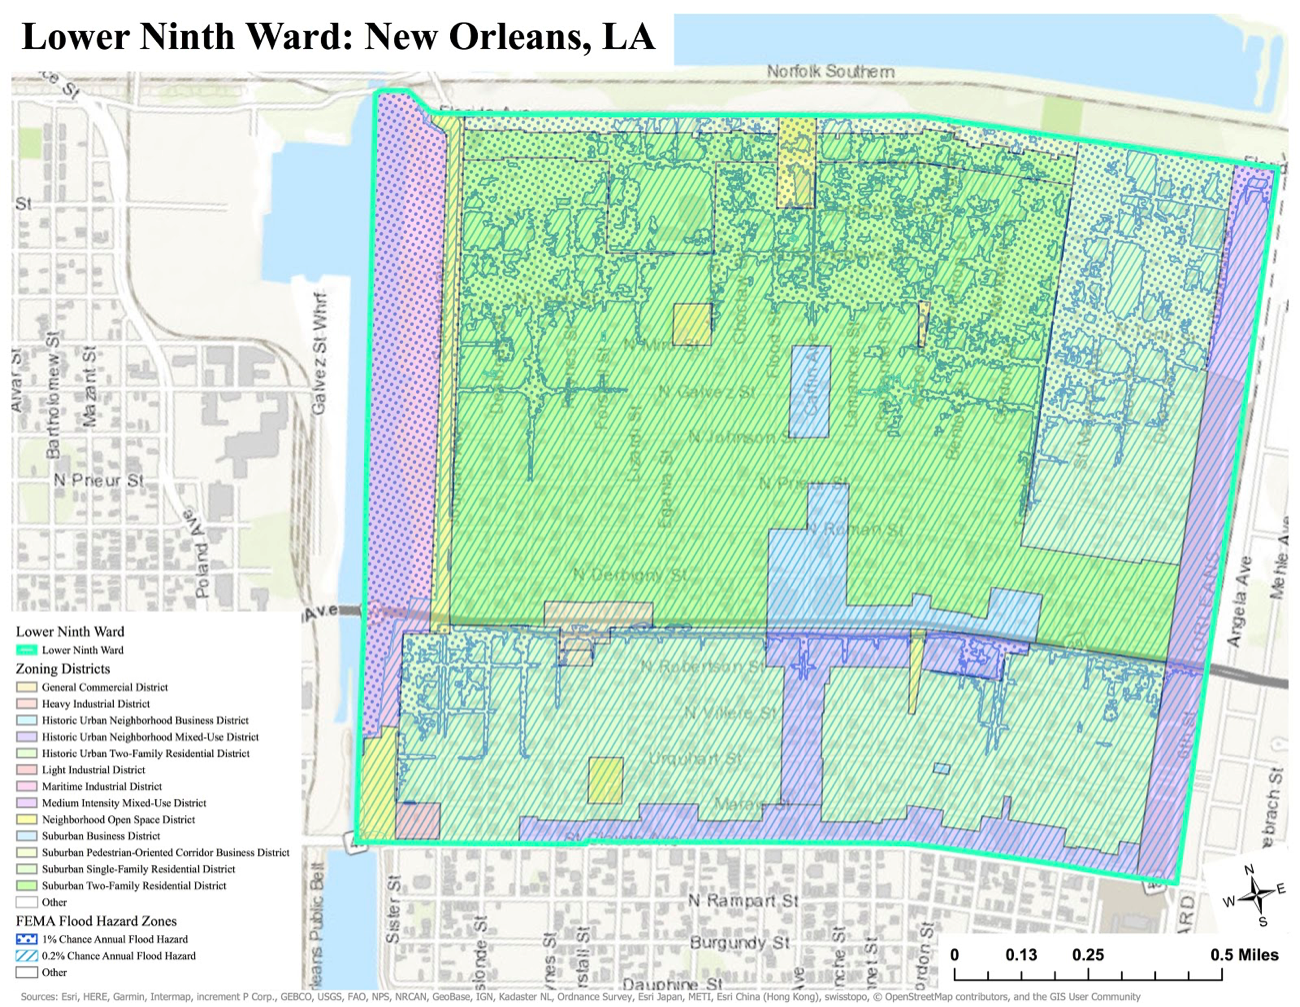 Mapping Flood Risk in New Orleans Using GIS — Global Green on city of brooklyn map, city of wisconsin map, city of shanghai map, city of kenner map, city of college park map, city of fort smith map, city of las vegas strip map, city of louisiana map, city of alamosa map, city of youngstown map, city of alabama map, city of las vegas nevada map, city of panama city map, city of oklahoma map, city of alcoa map, city of oslo map, city of jasper georgia map, city nc map, city of atlantic city map, city of la junta map,